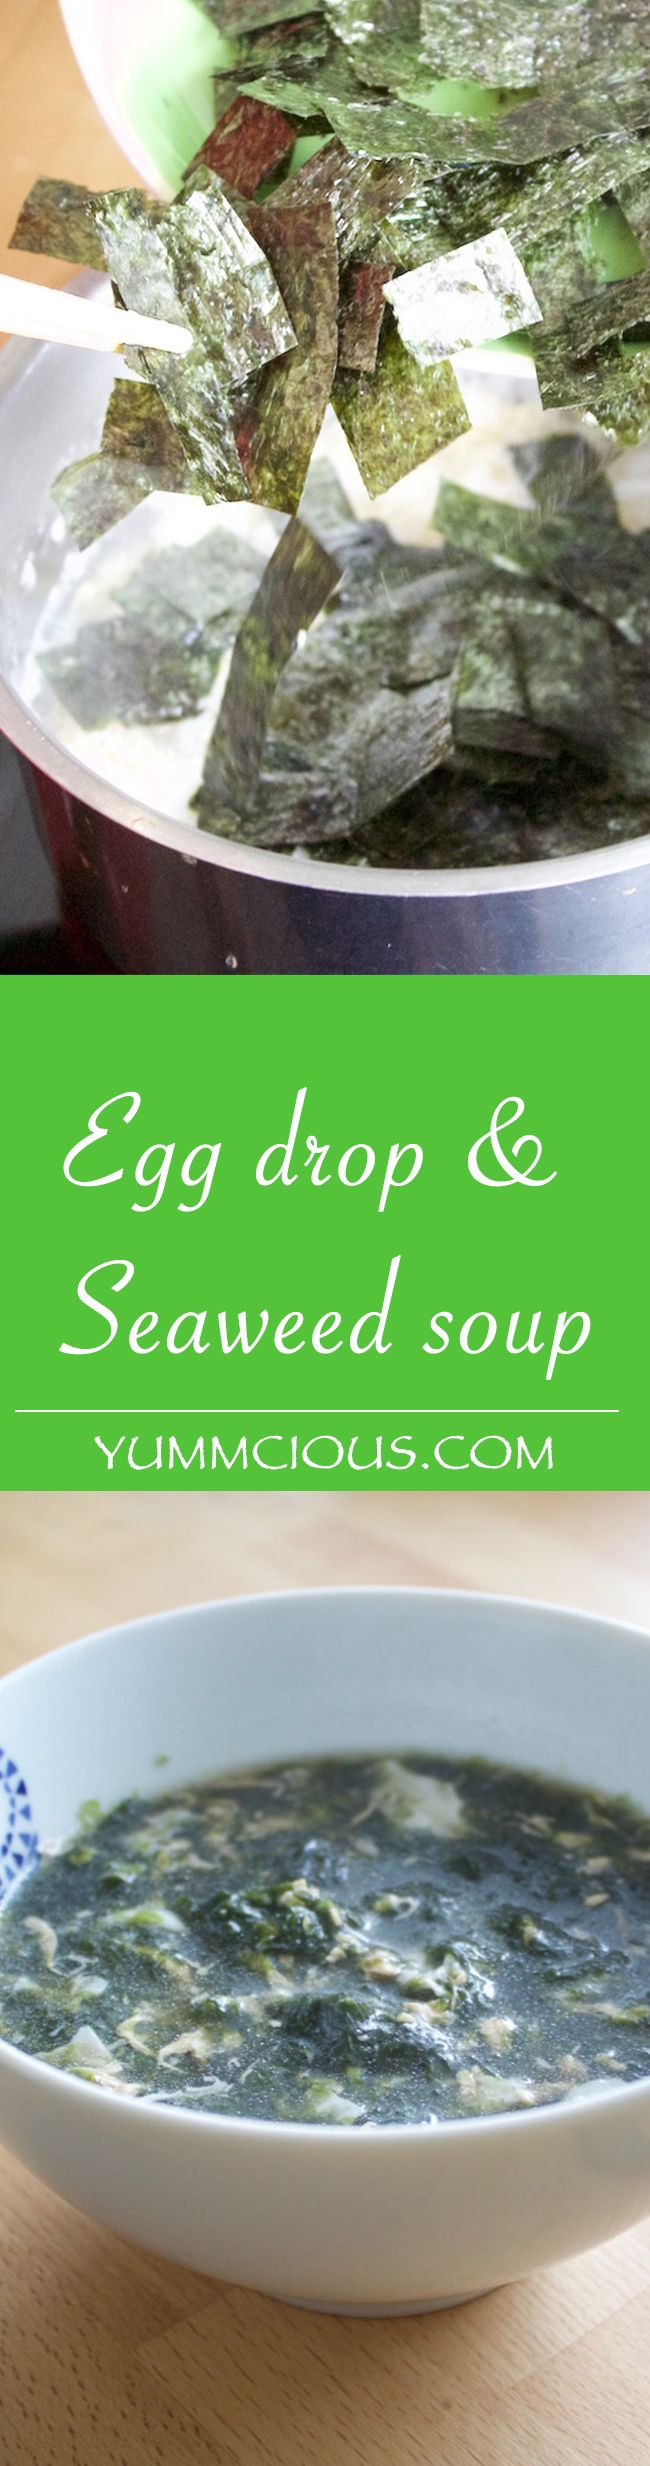 Egg drop and seaweed soup! Healthy and tasty! http://yummcious.com/egg-drop-and-seaweed-soup/